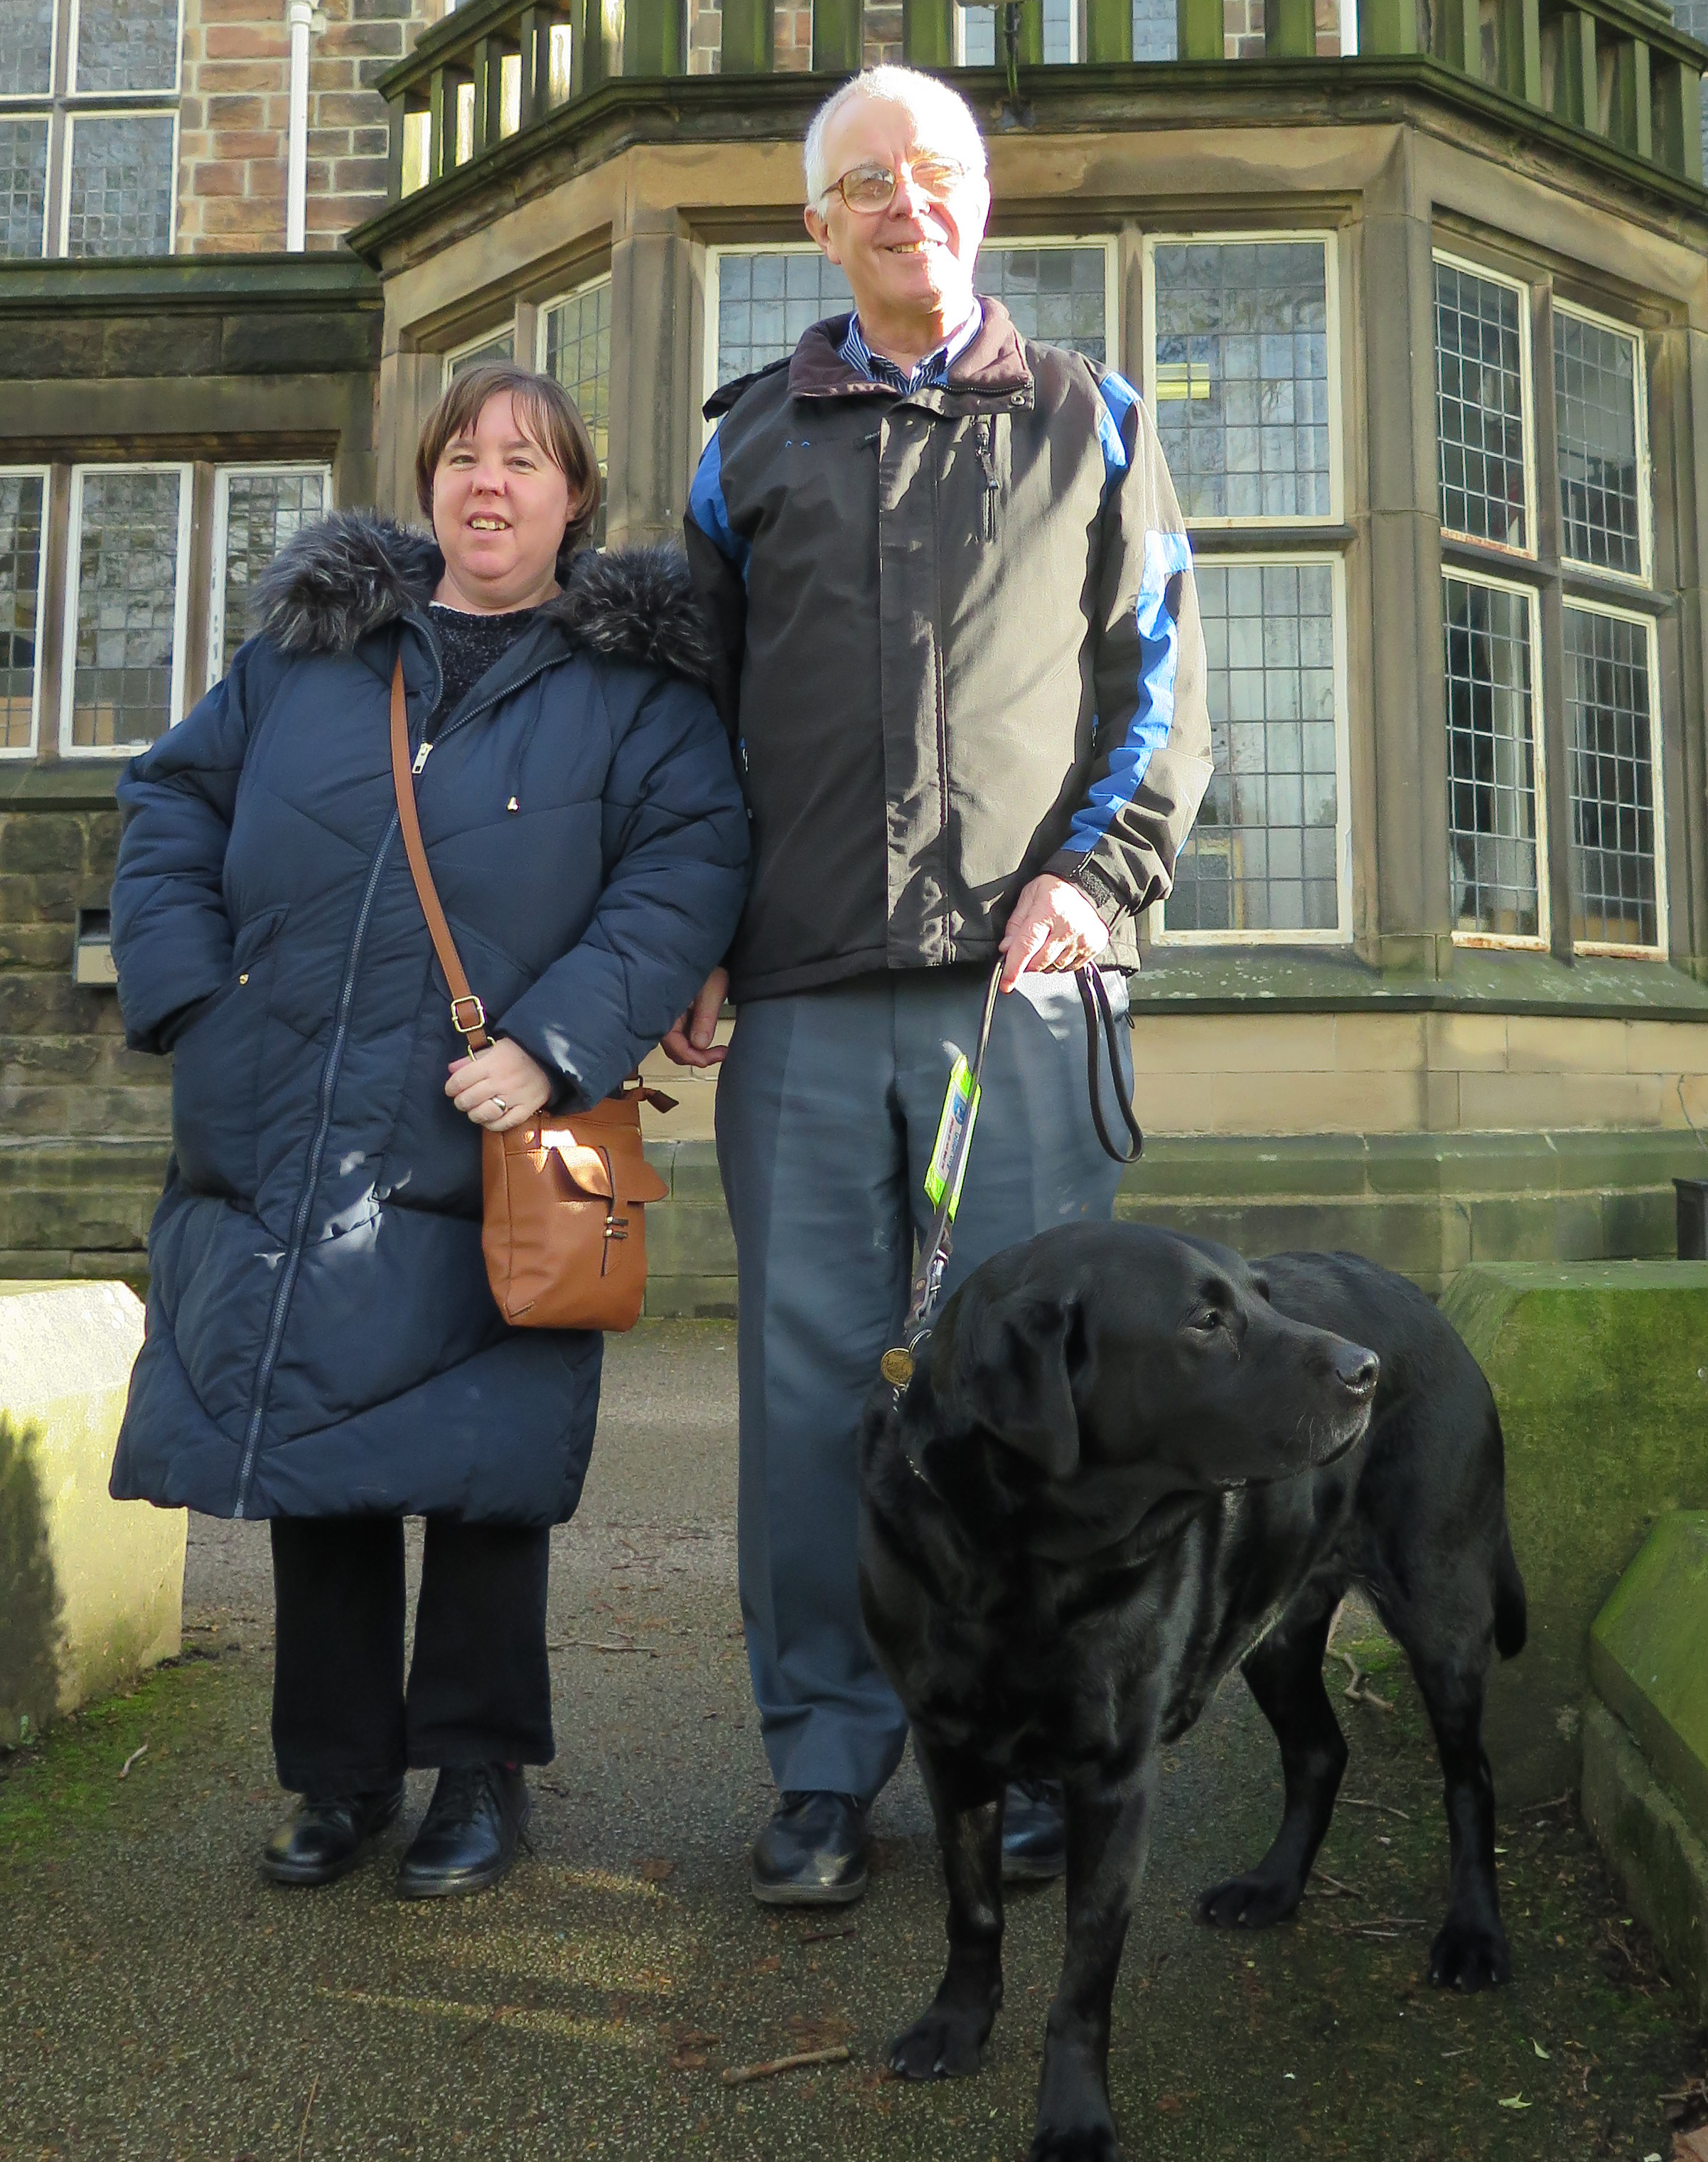 Image showing visually impaired man with assistance dog